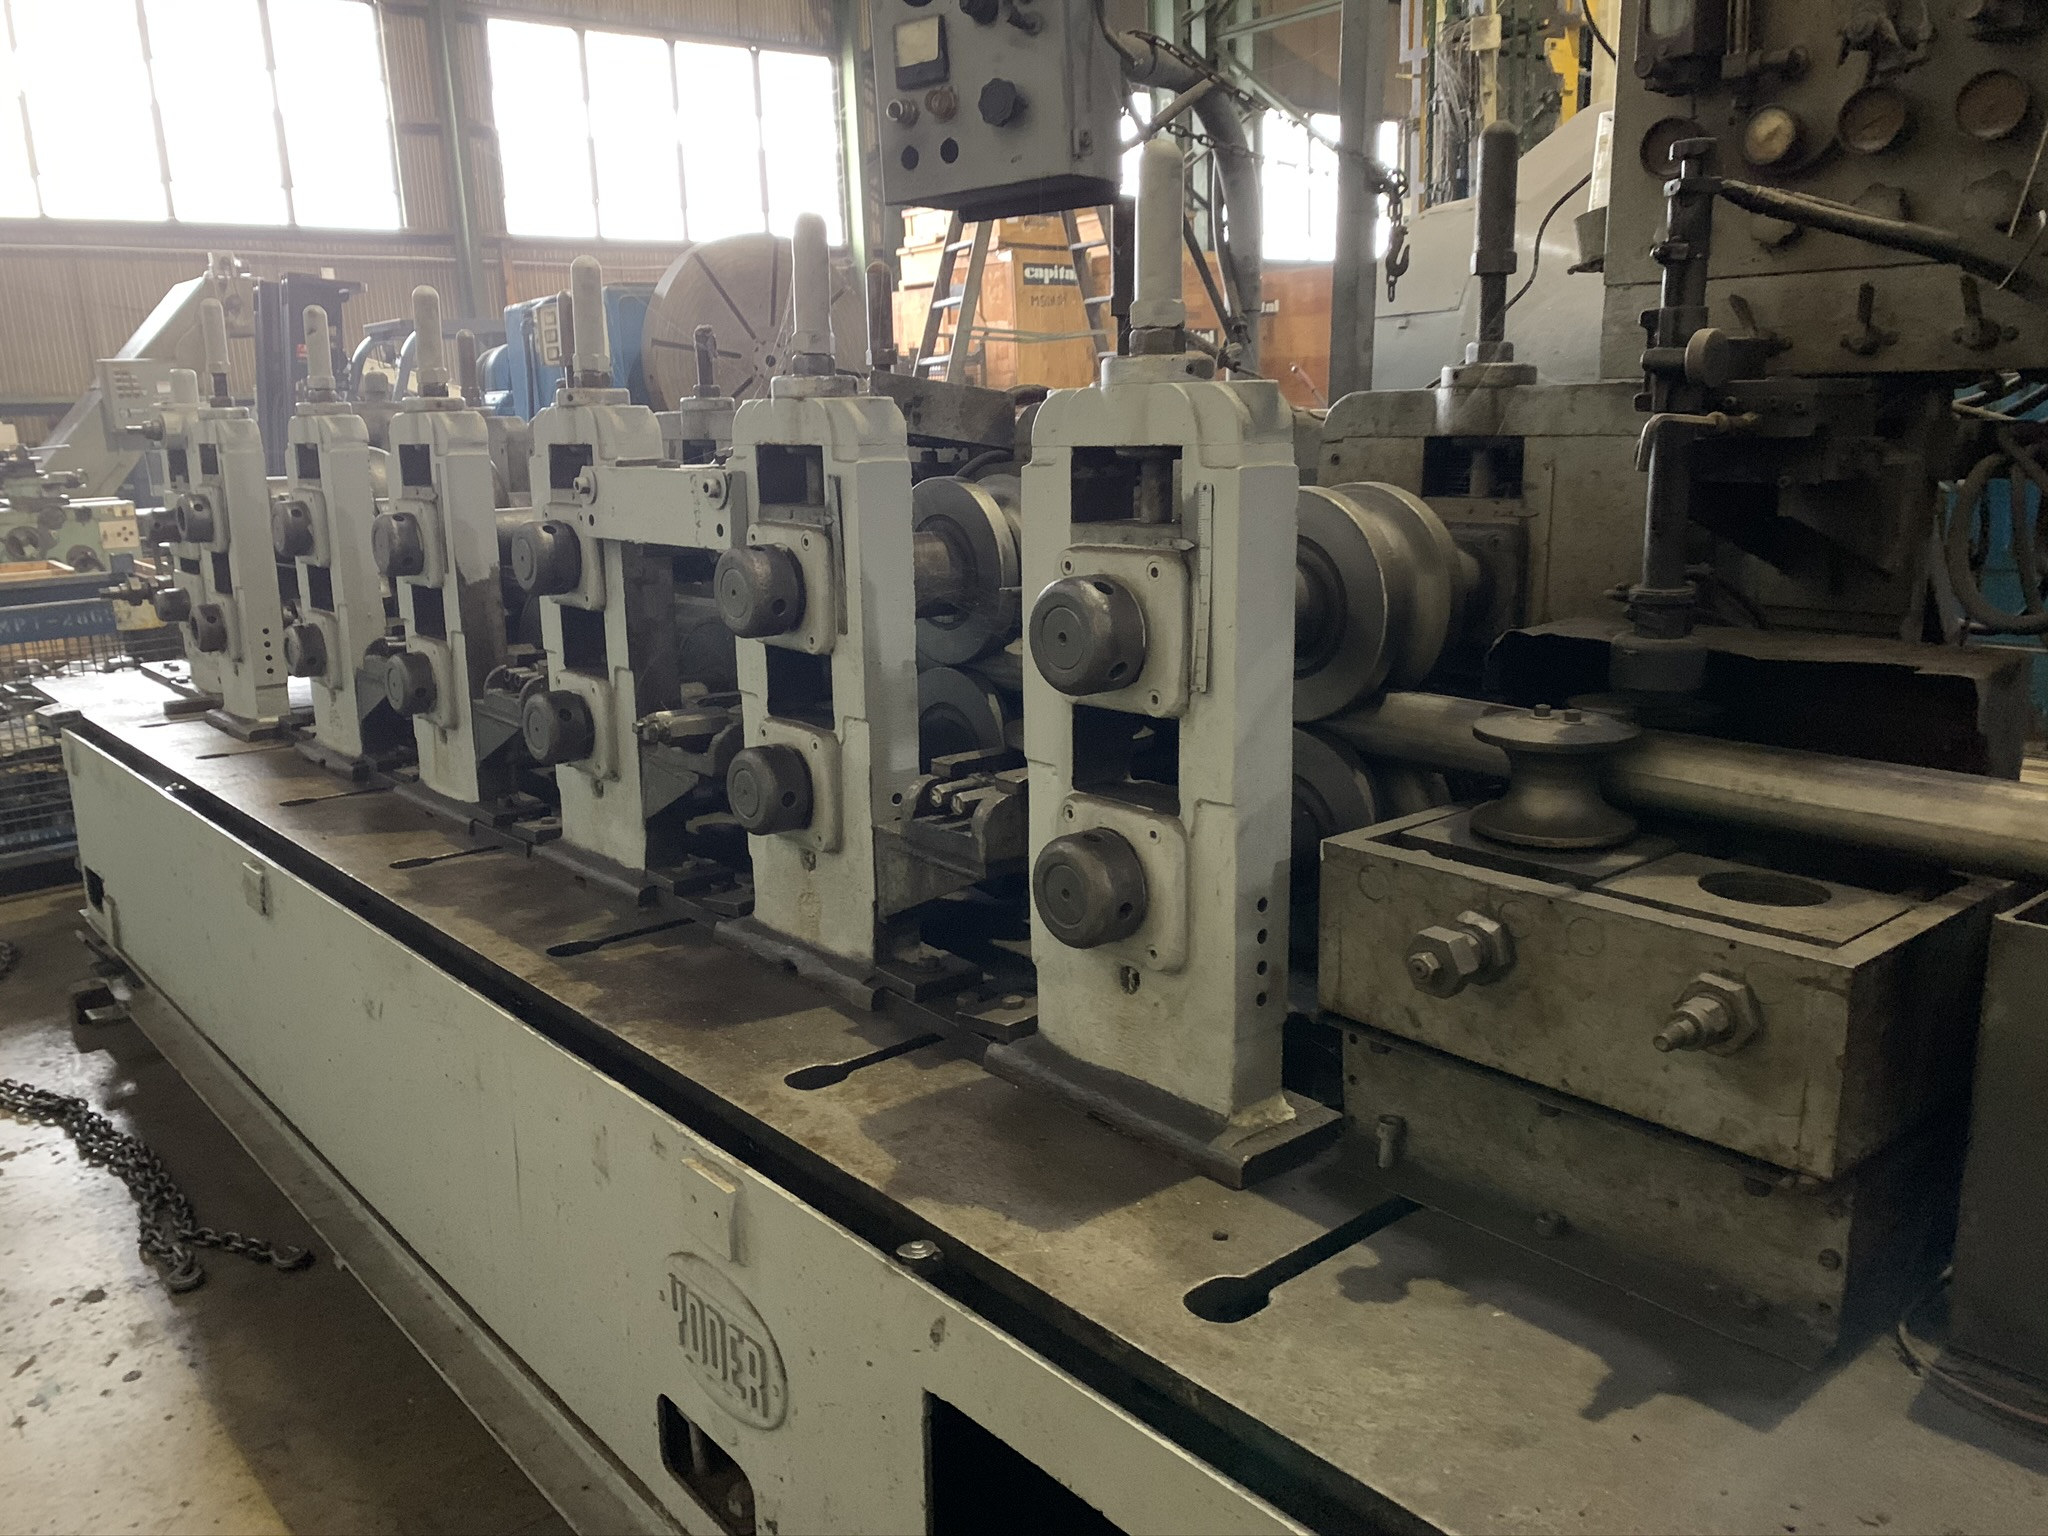 YODER MODEL M3 TUBE MILL; S/N 39774 68259-1, 9-STAND 7-DRIVEN FORMING STANDS, (2) SIZING STANDS, - Image 3 of 9